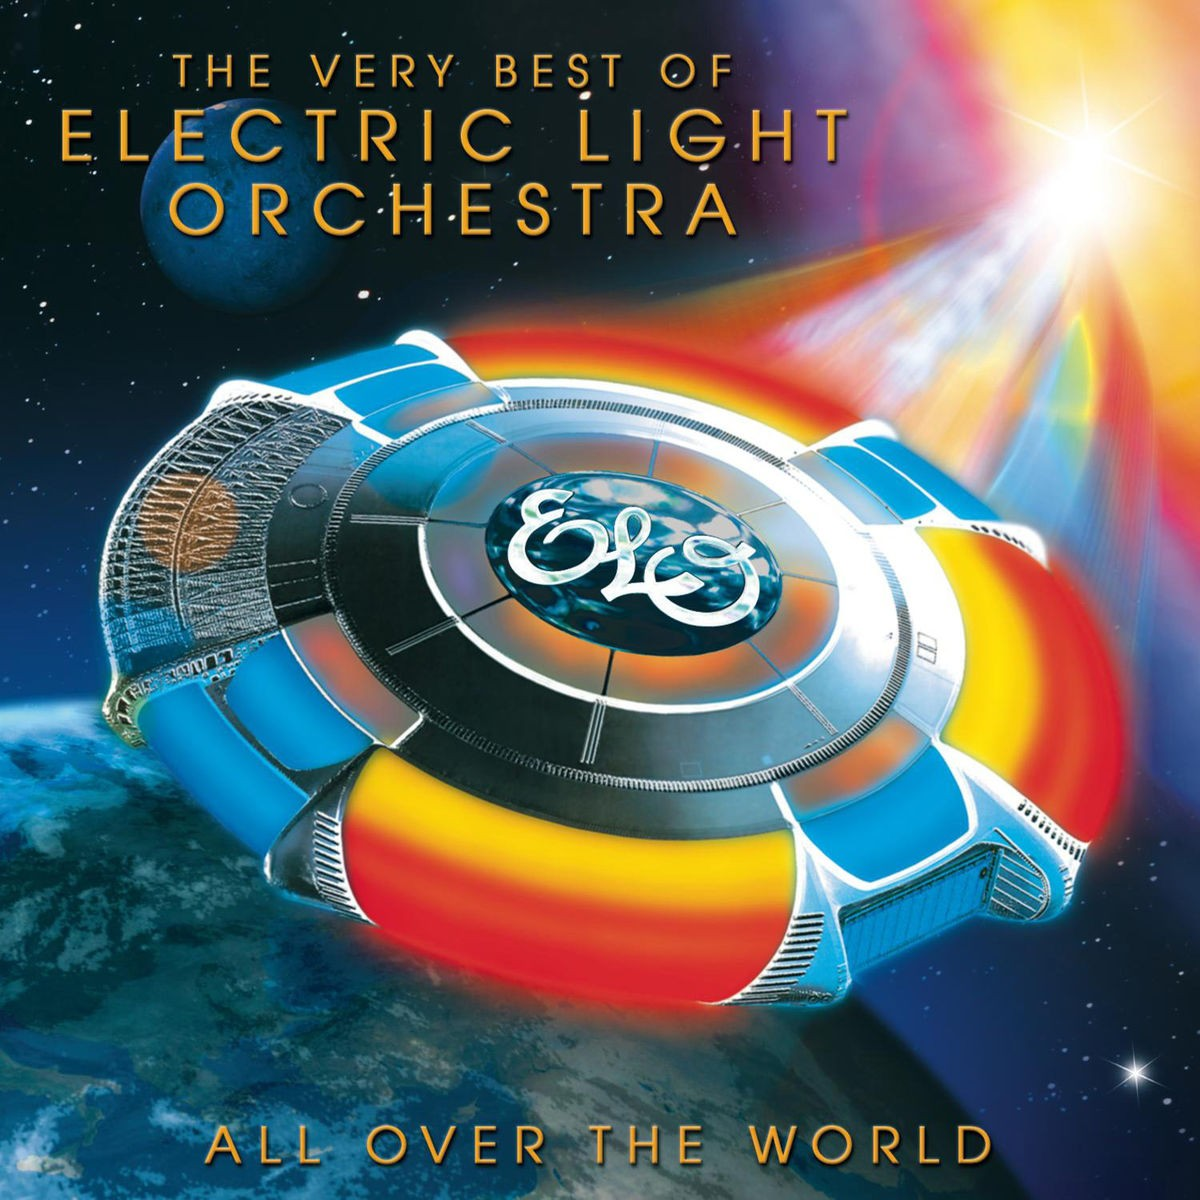 Electric Light Orchestra - All Over the World: The Very Best Of CD - 886970464925